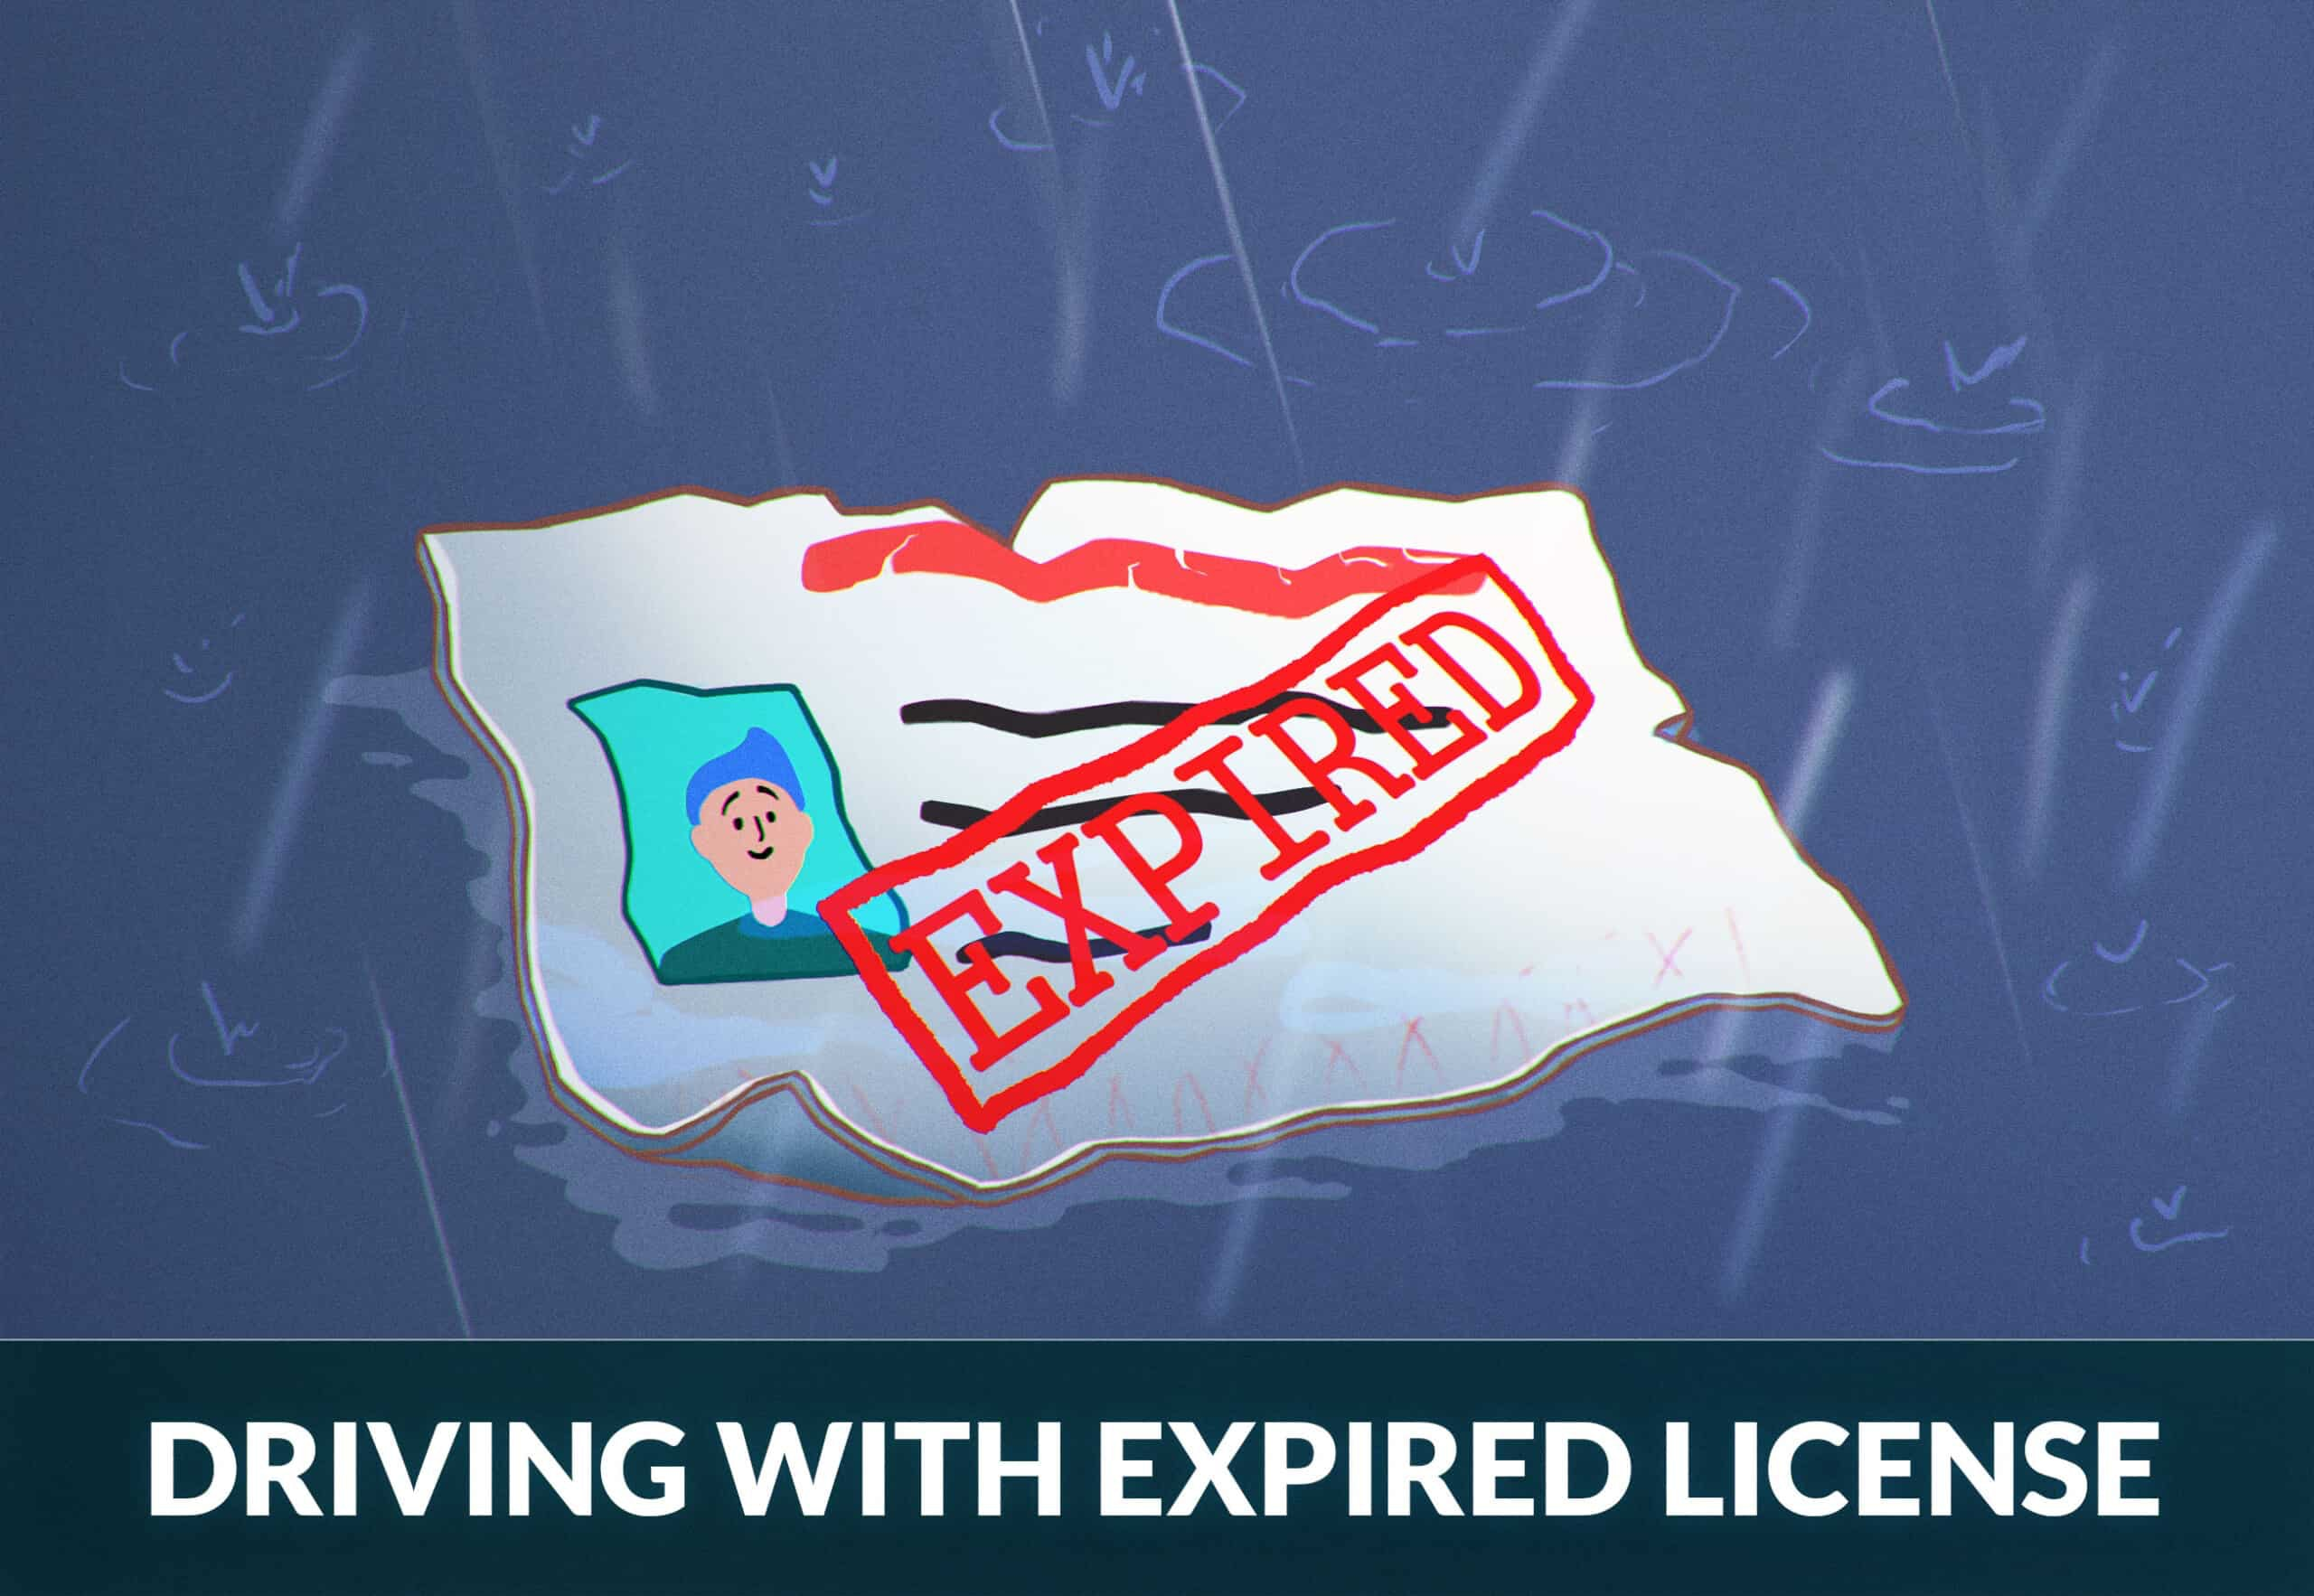 Driving with an expired driver's license